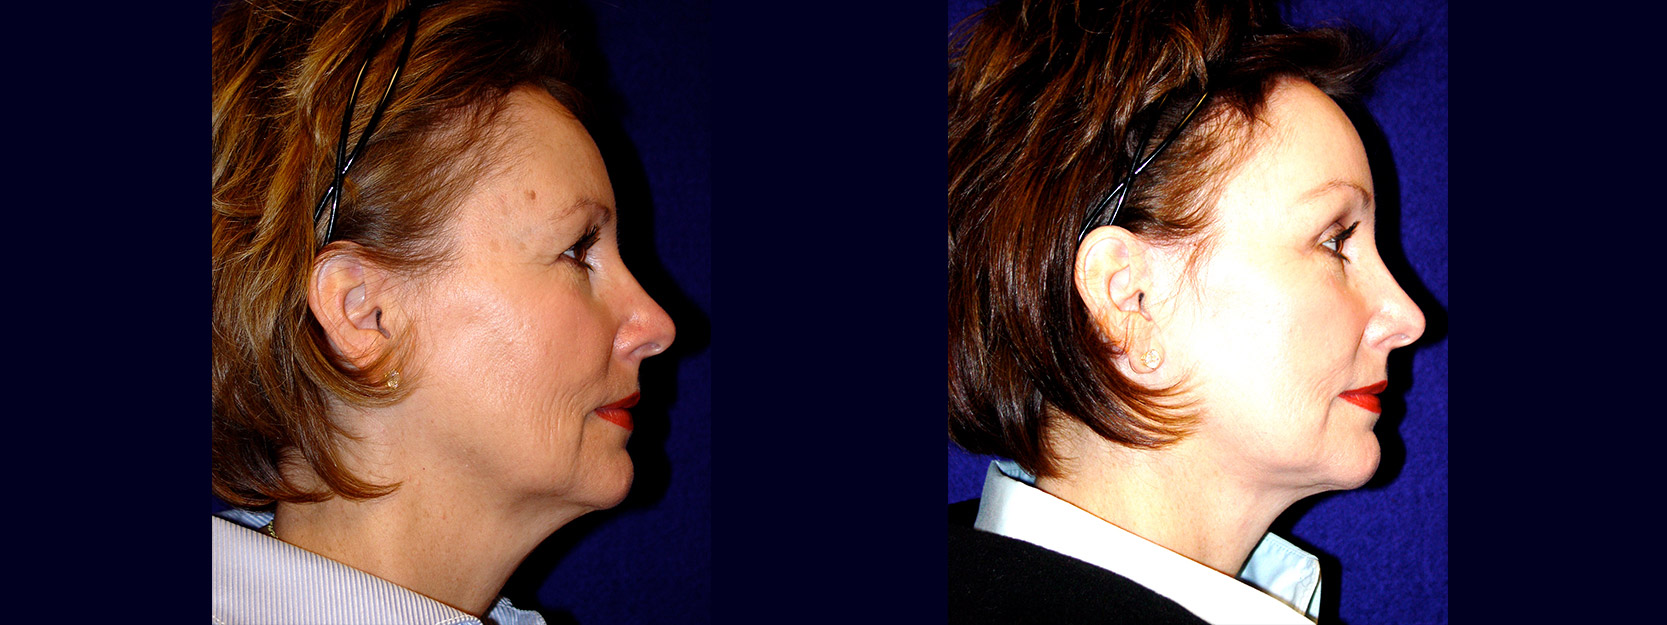 Full Right Profile View - Facelift with Upper Eyelid Surgery and Browlift